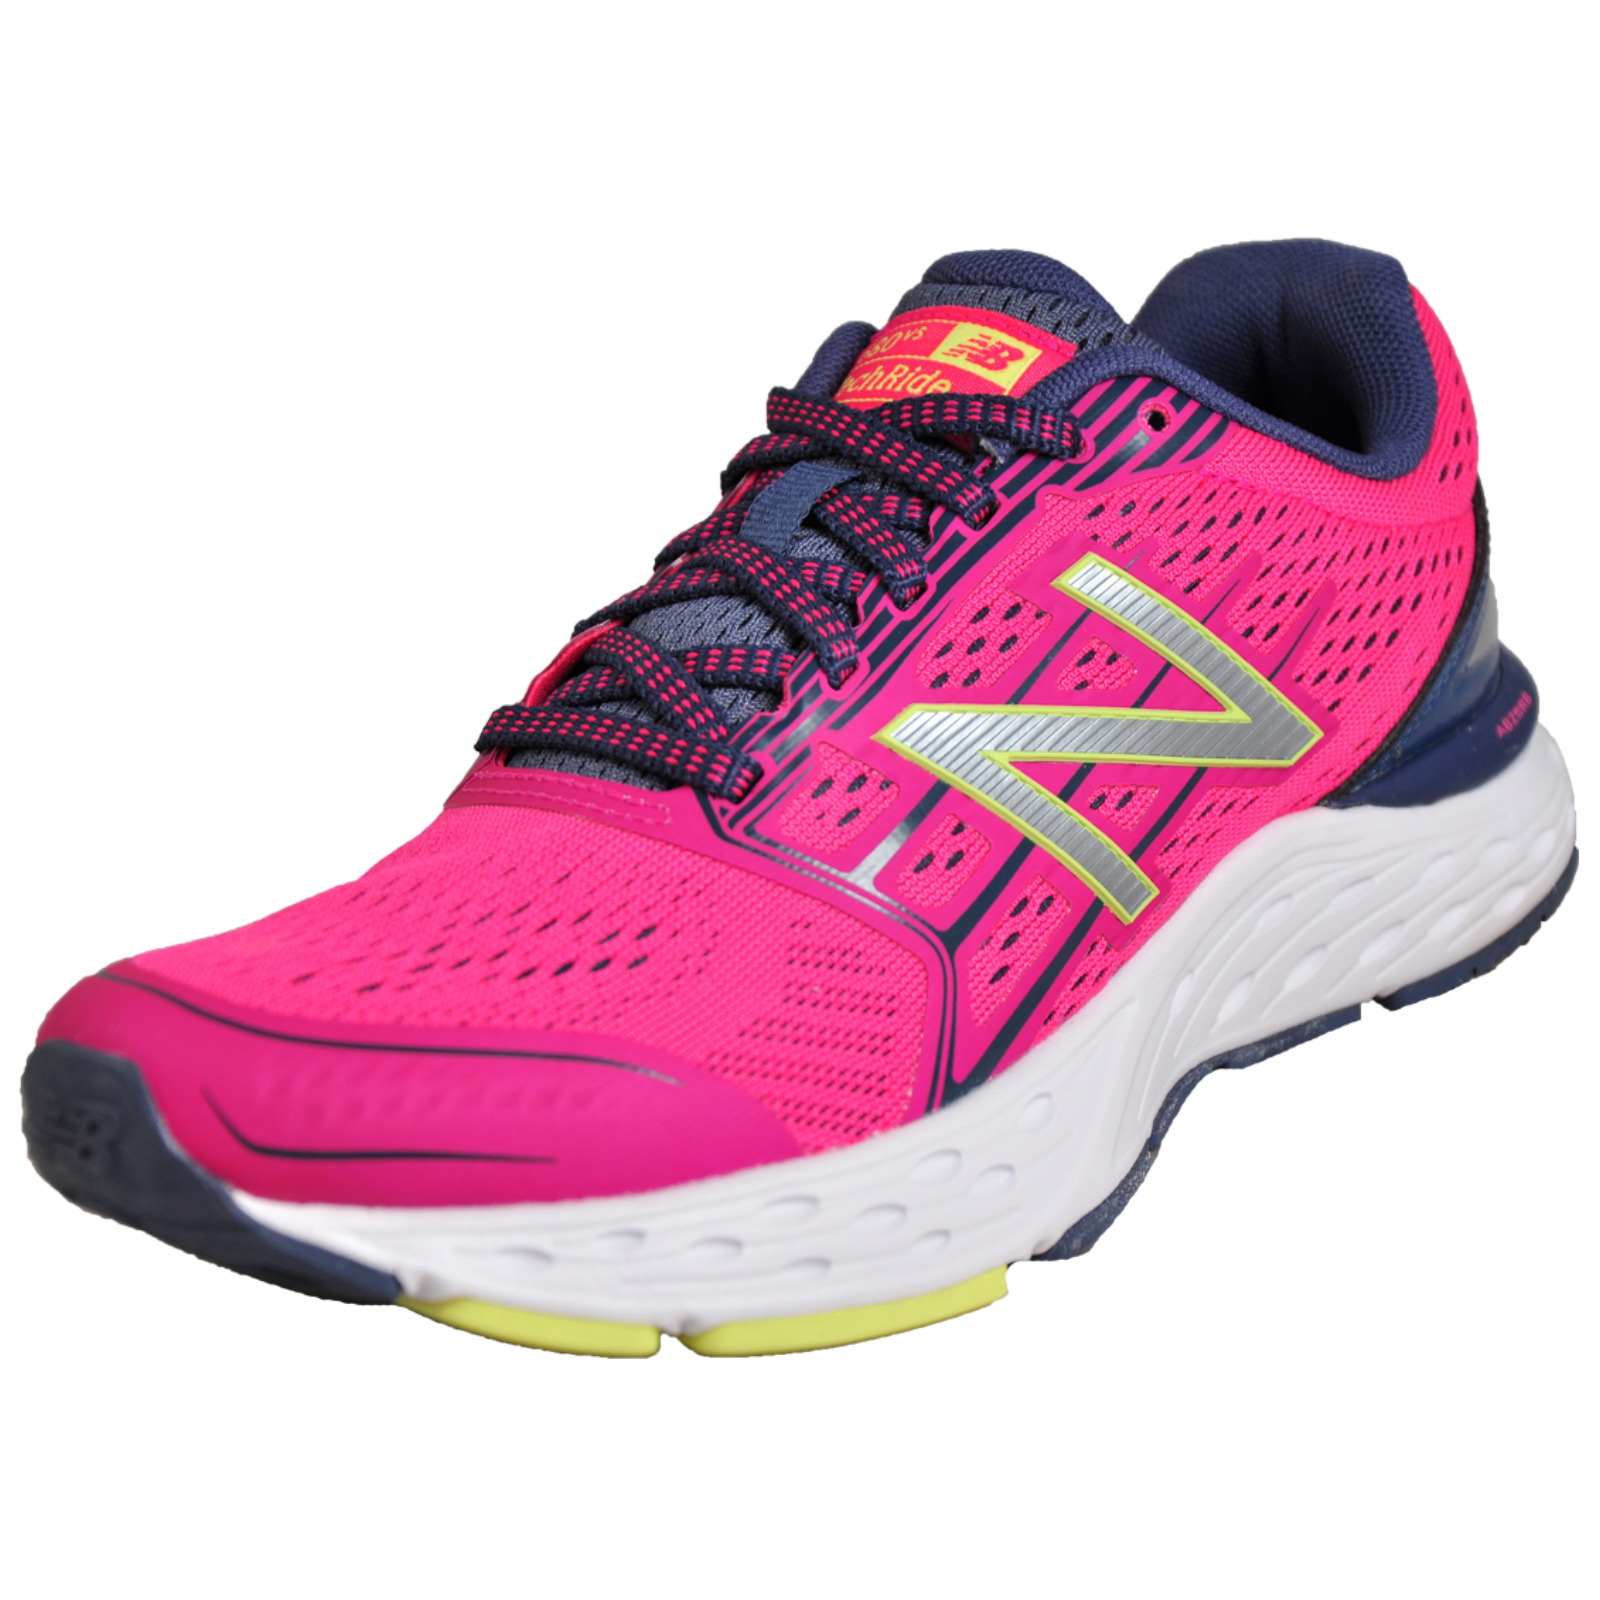 140bd3341a96 Details about New Balance 680 v5 Women s Premium Running Shoes Fitness Gym  Trainers